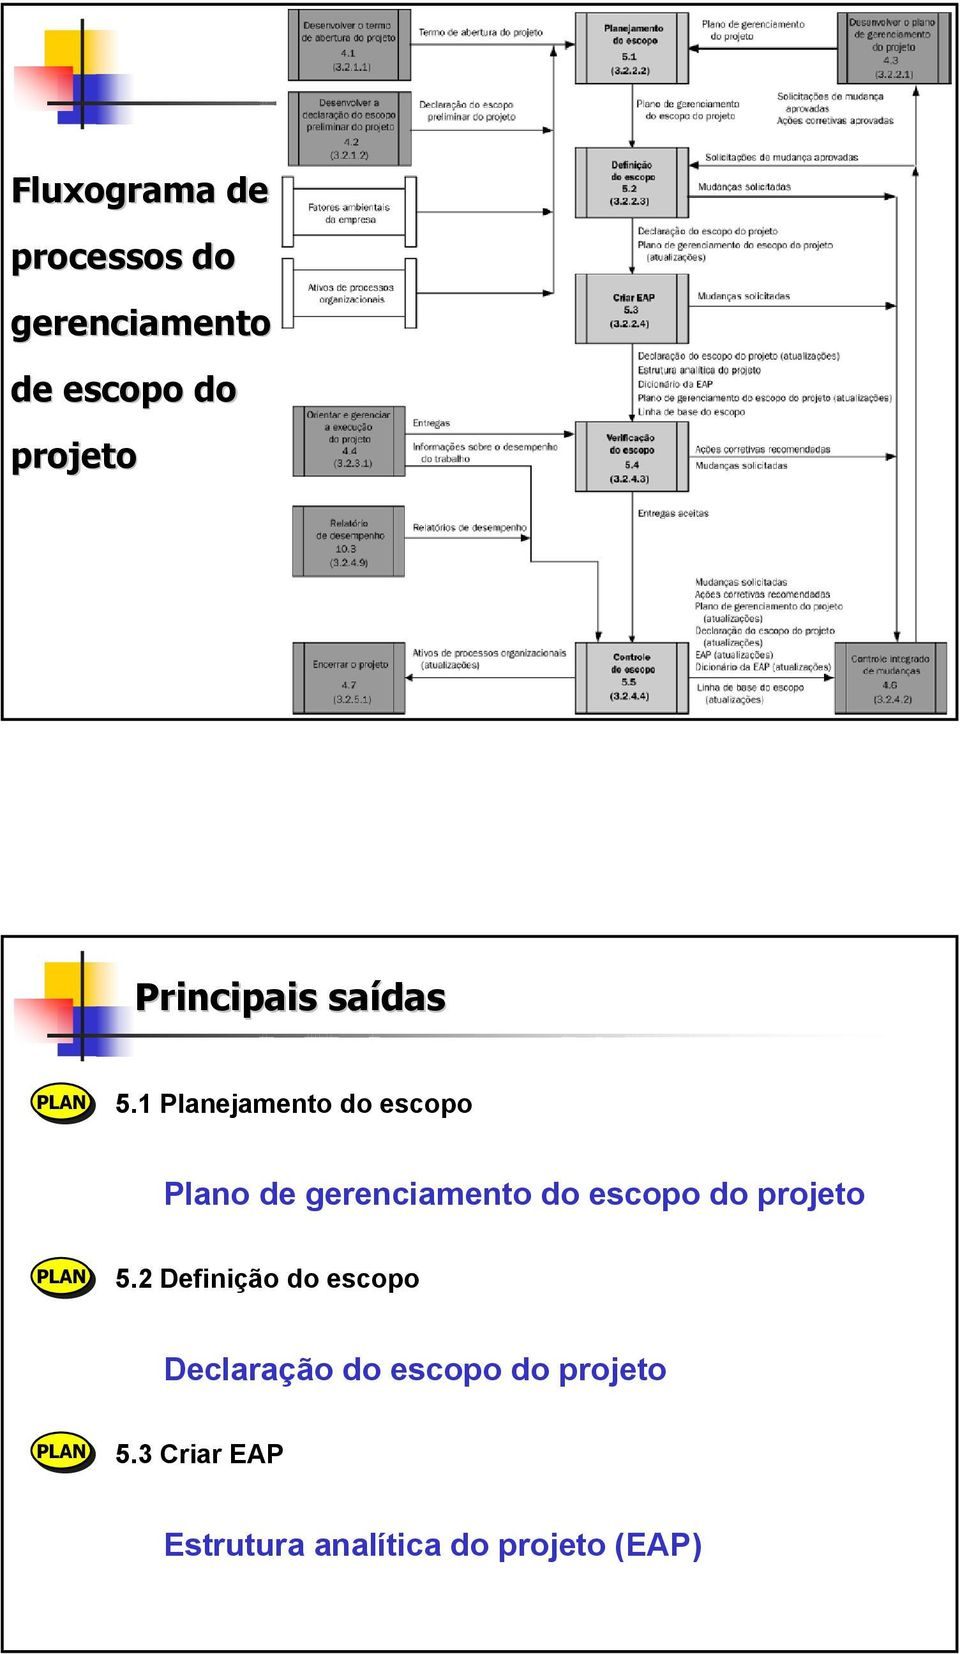 1 Planejamento do escopo Plano de gerenciamento do escopo do